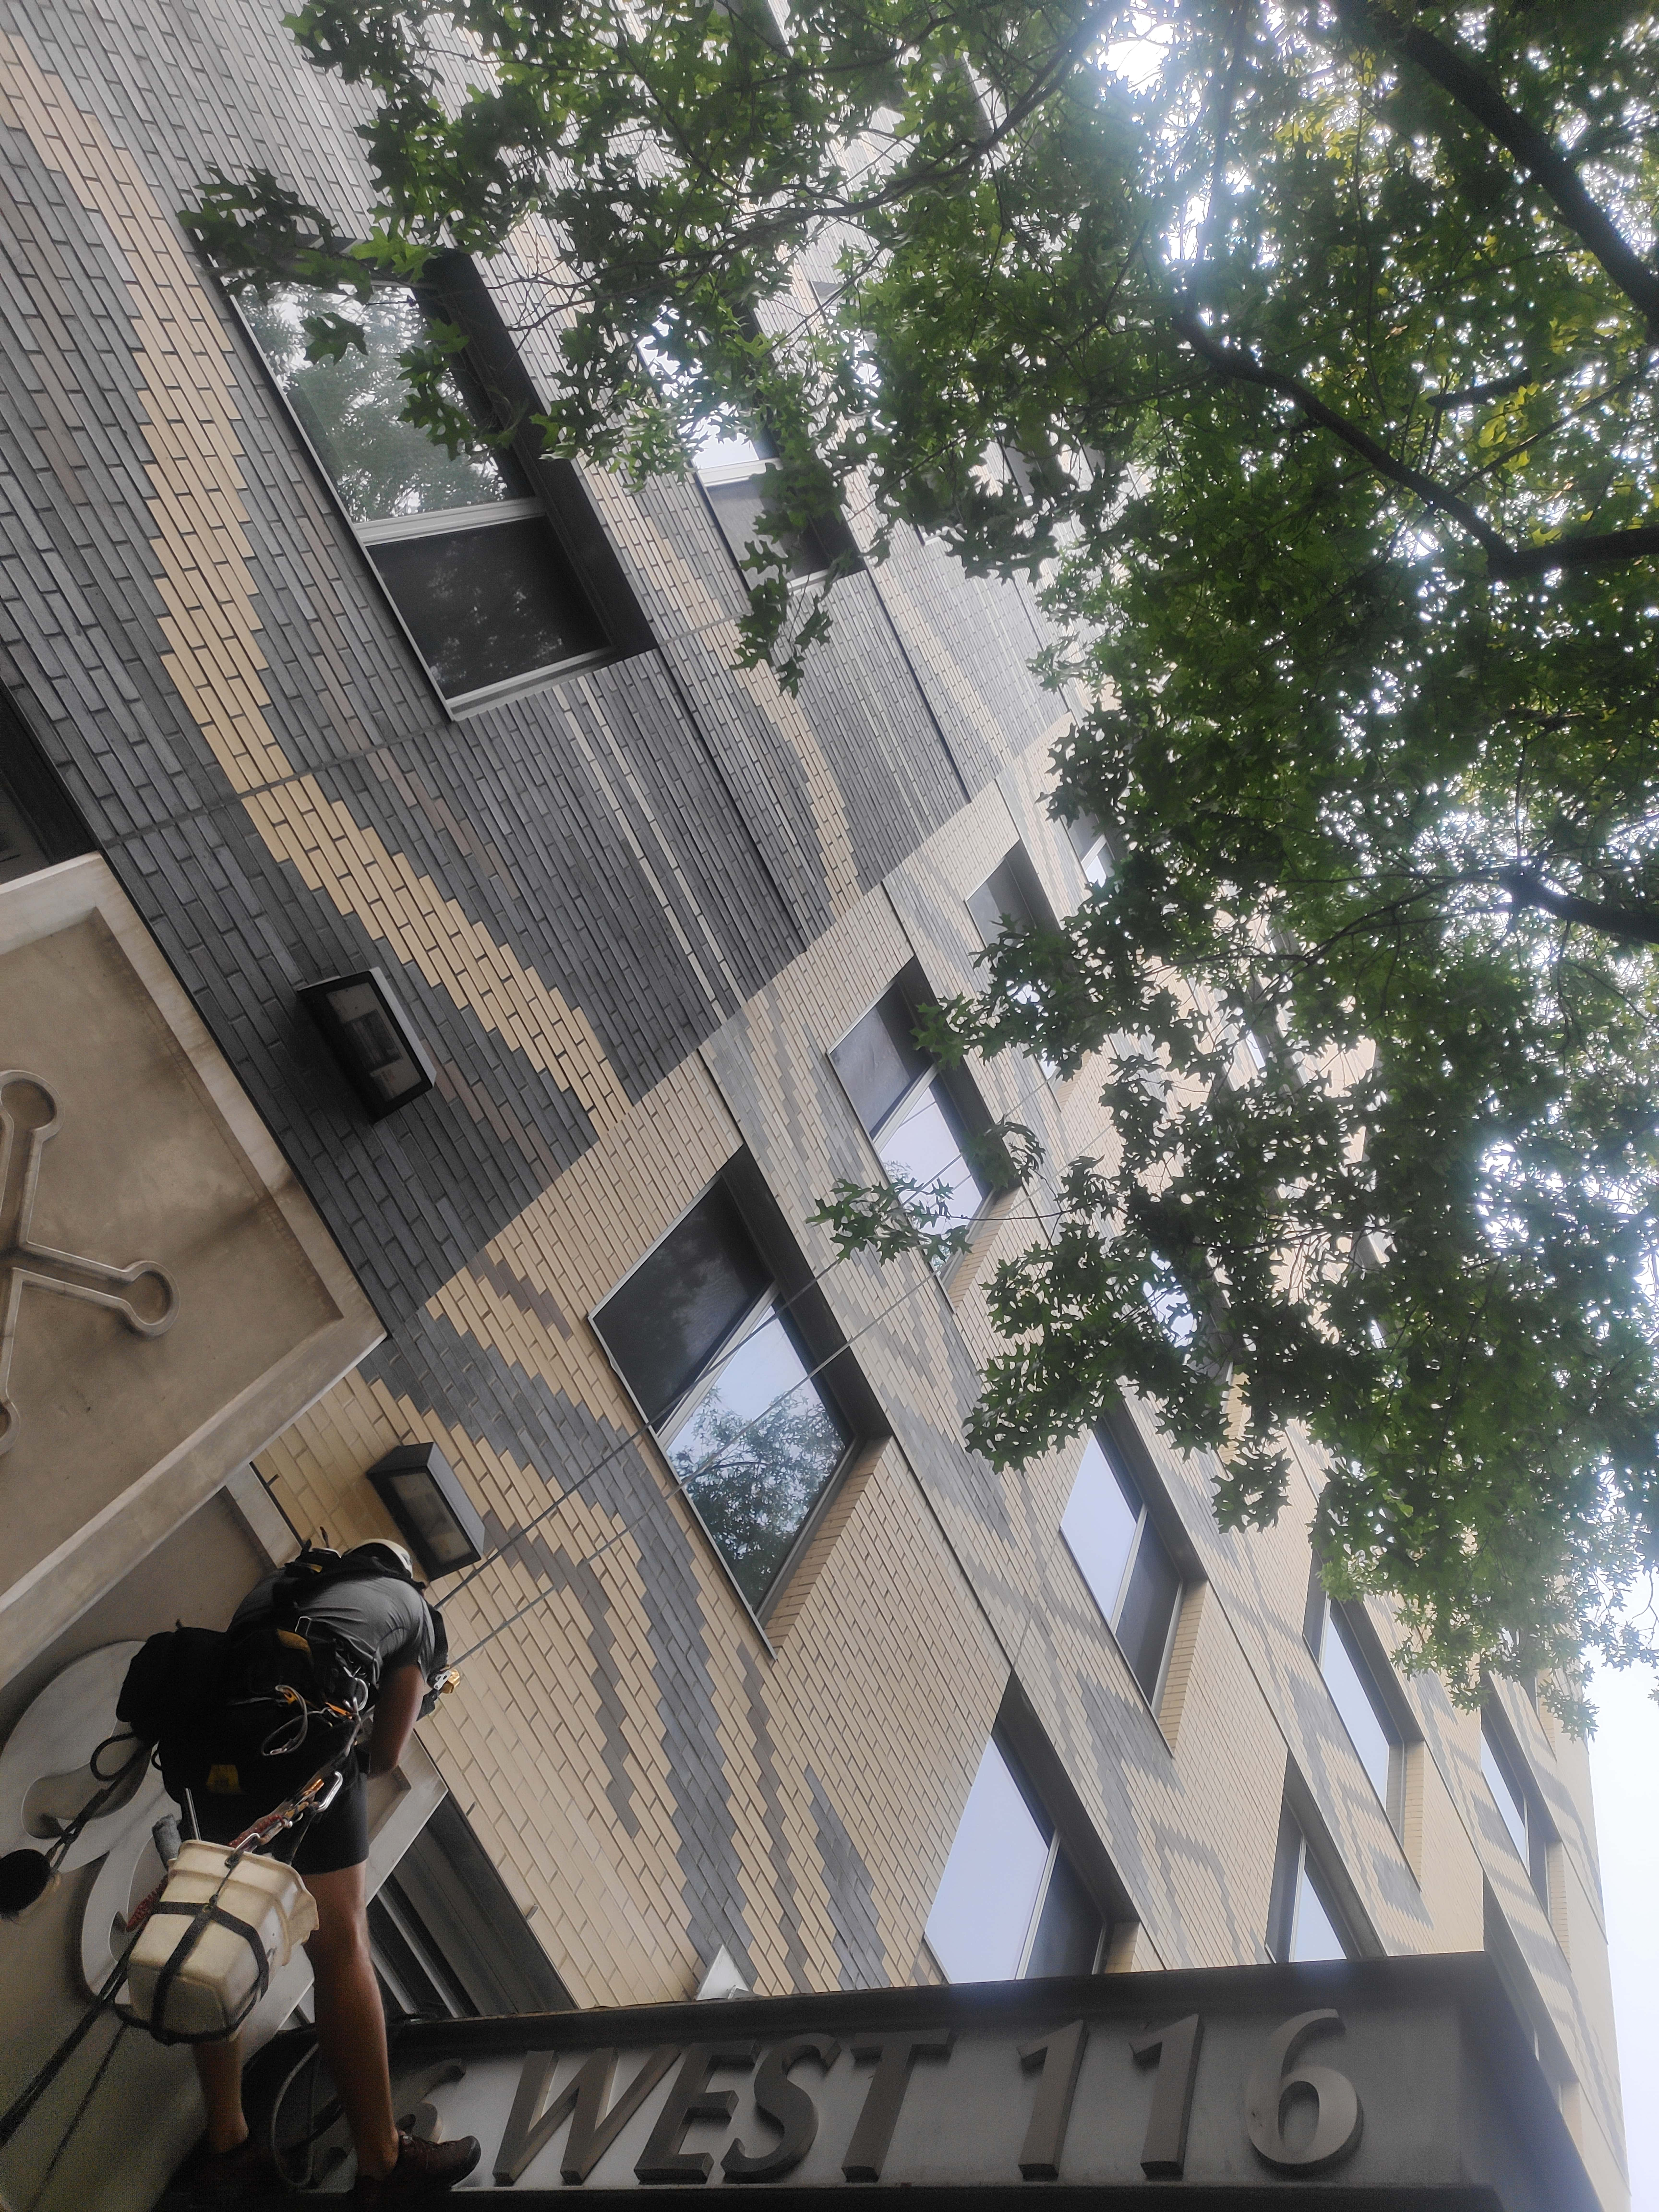 Washing fasade building in 40 West 116th Street - Big Apple Window Cleaning